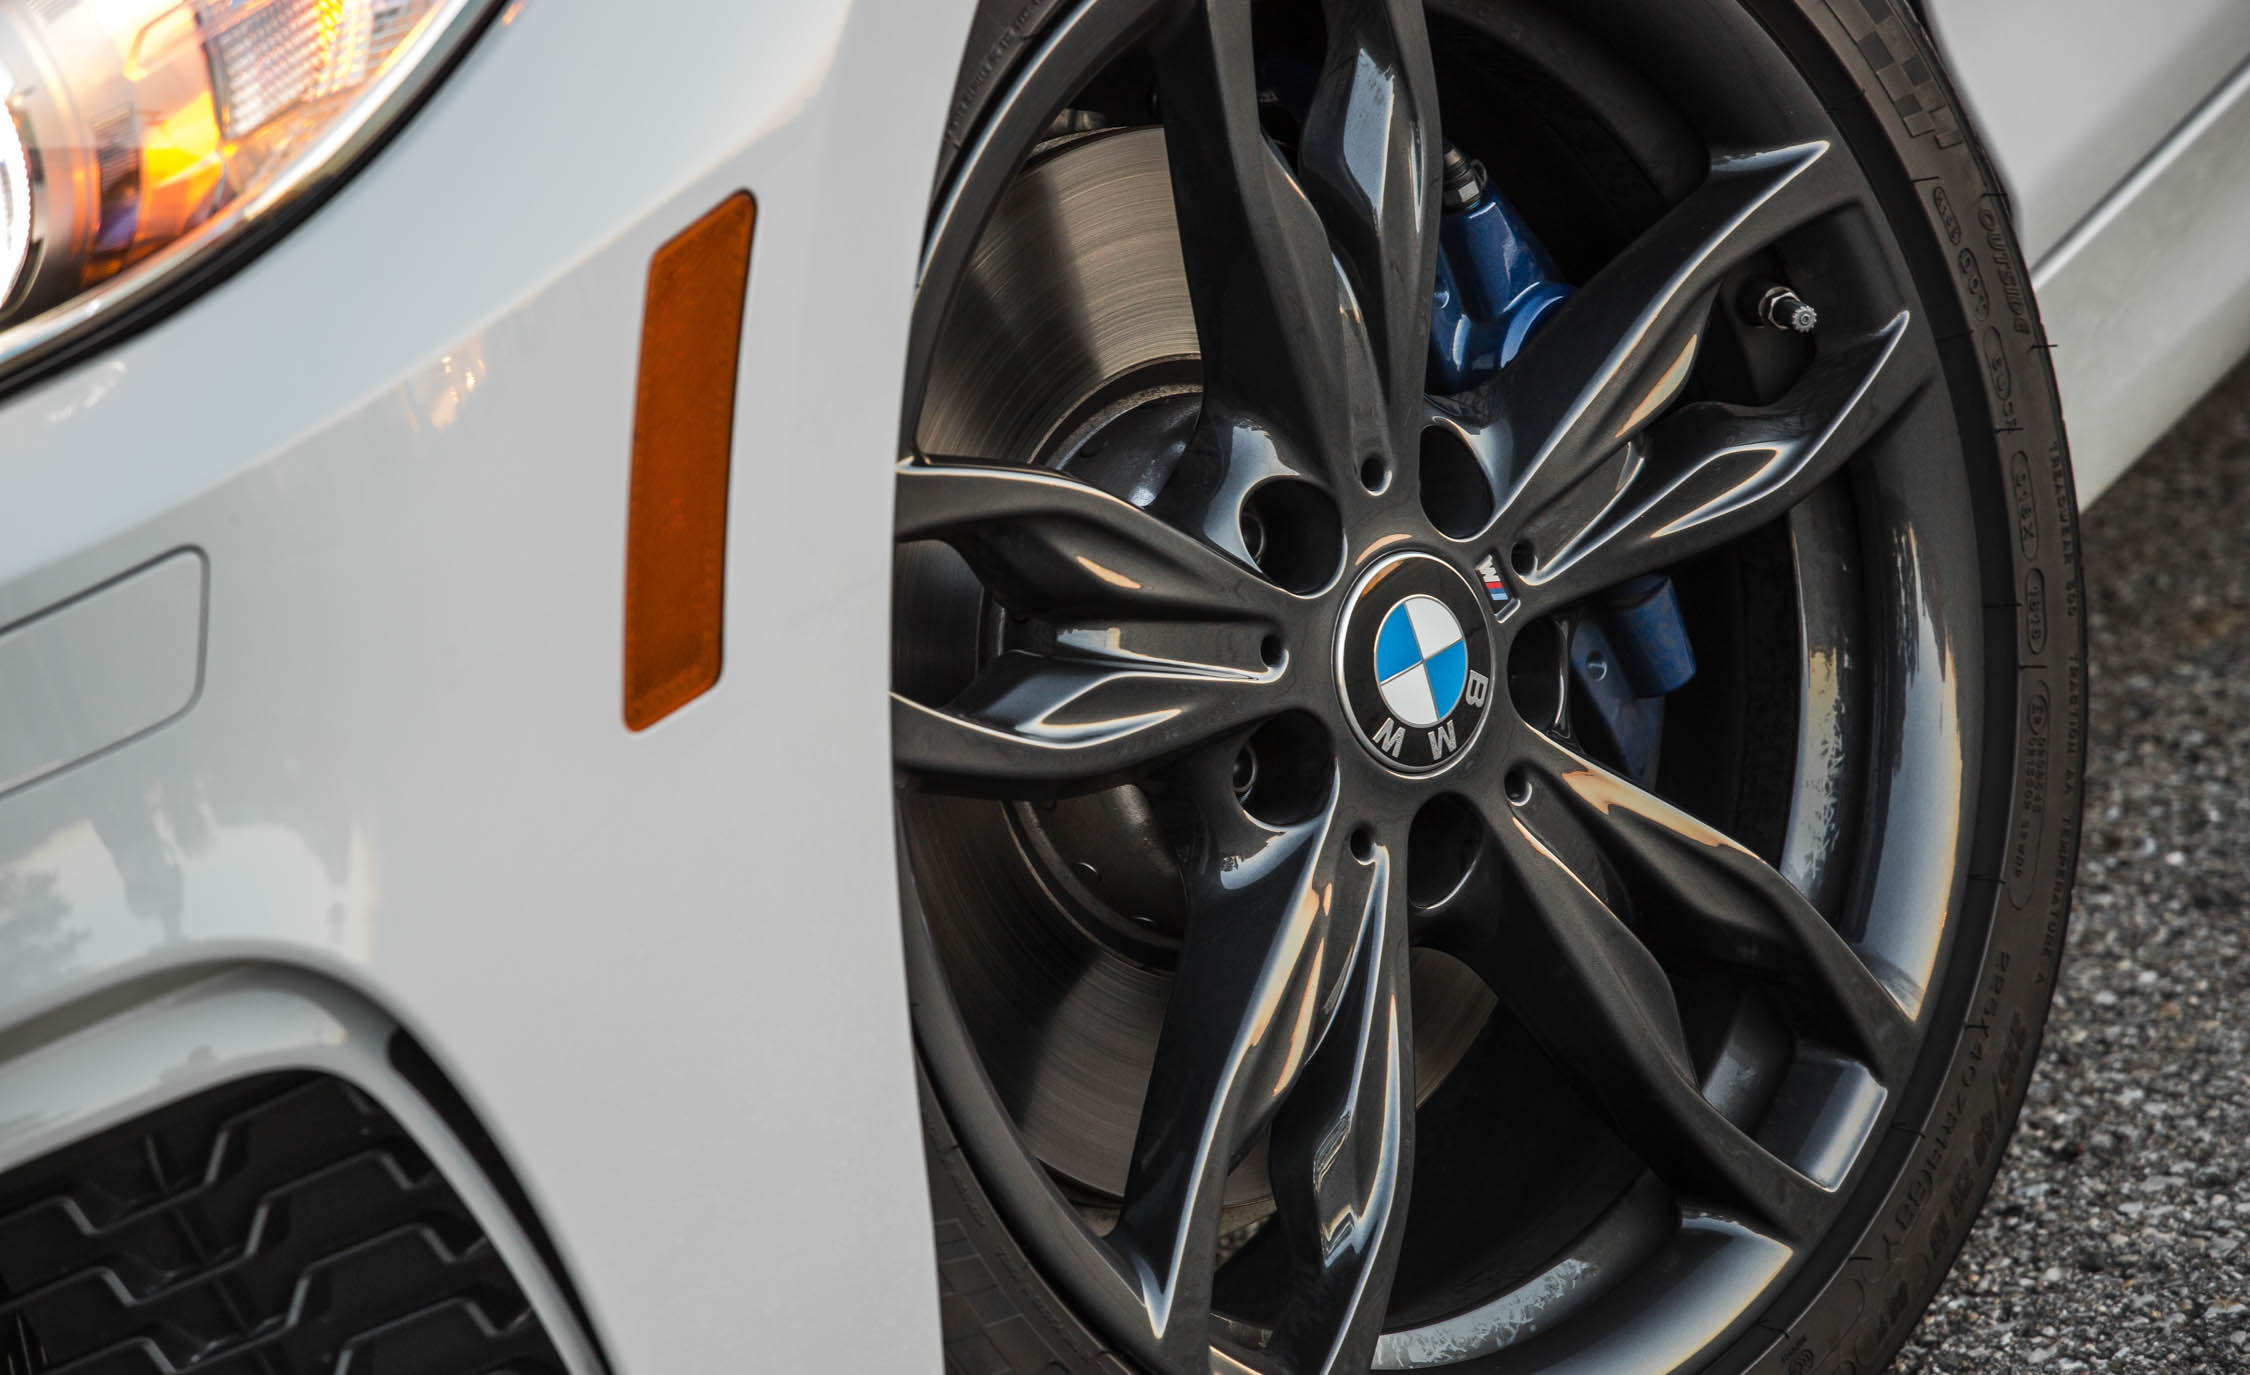 2017 BMW M240i Coupe Automatic Exterior View Wheel (Photo 14 of 36)